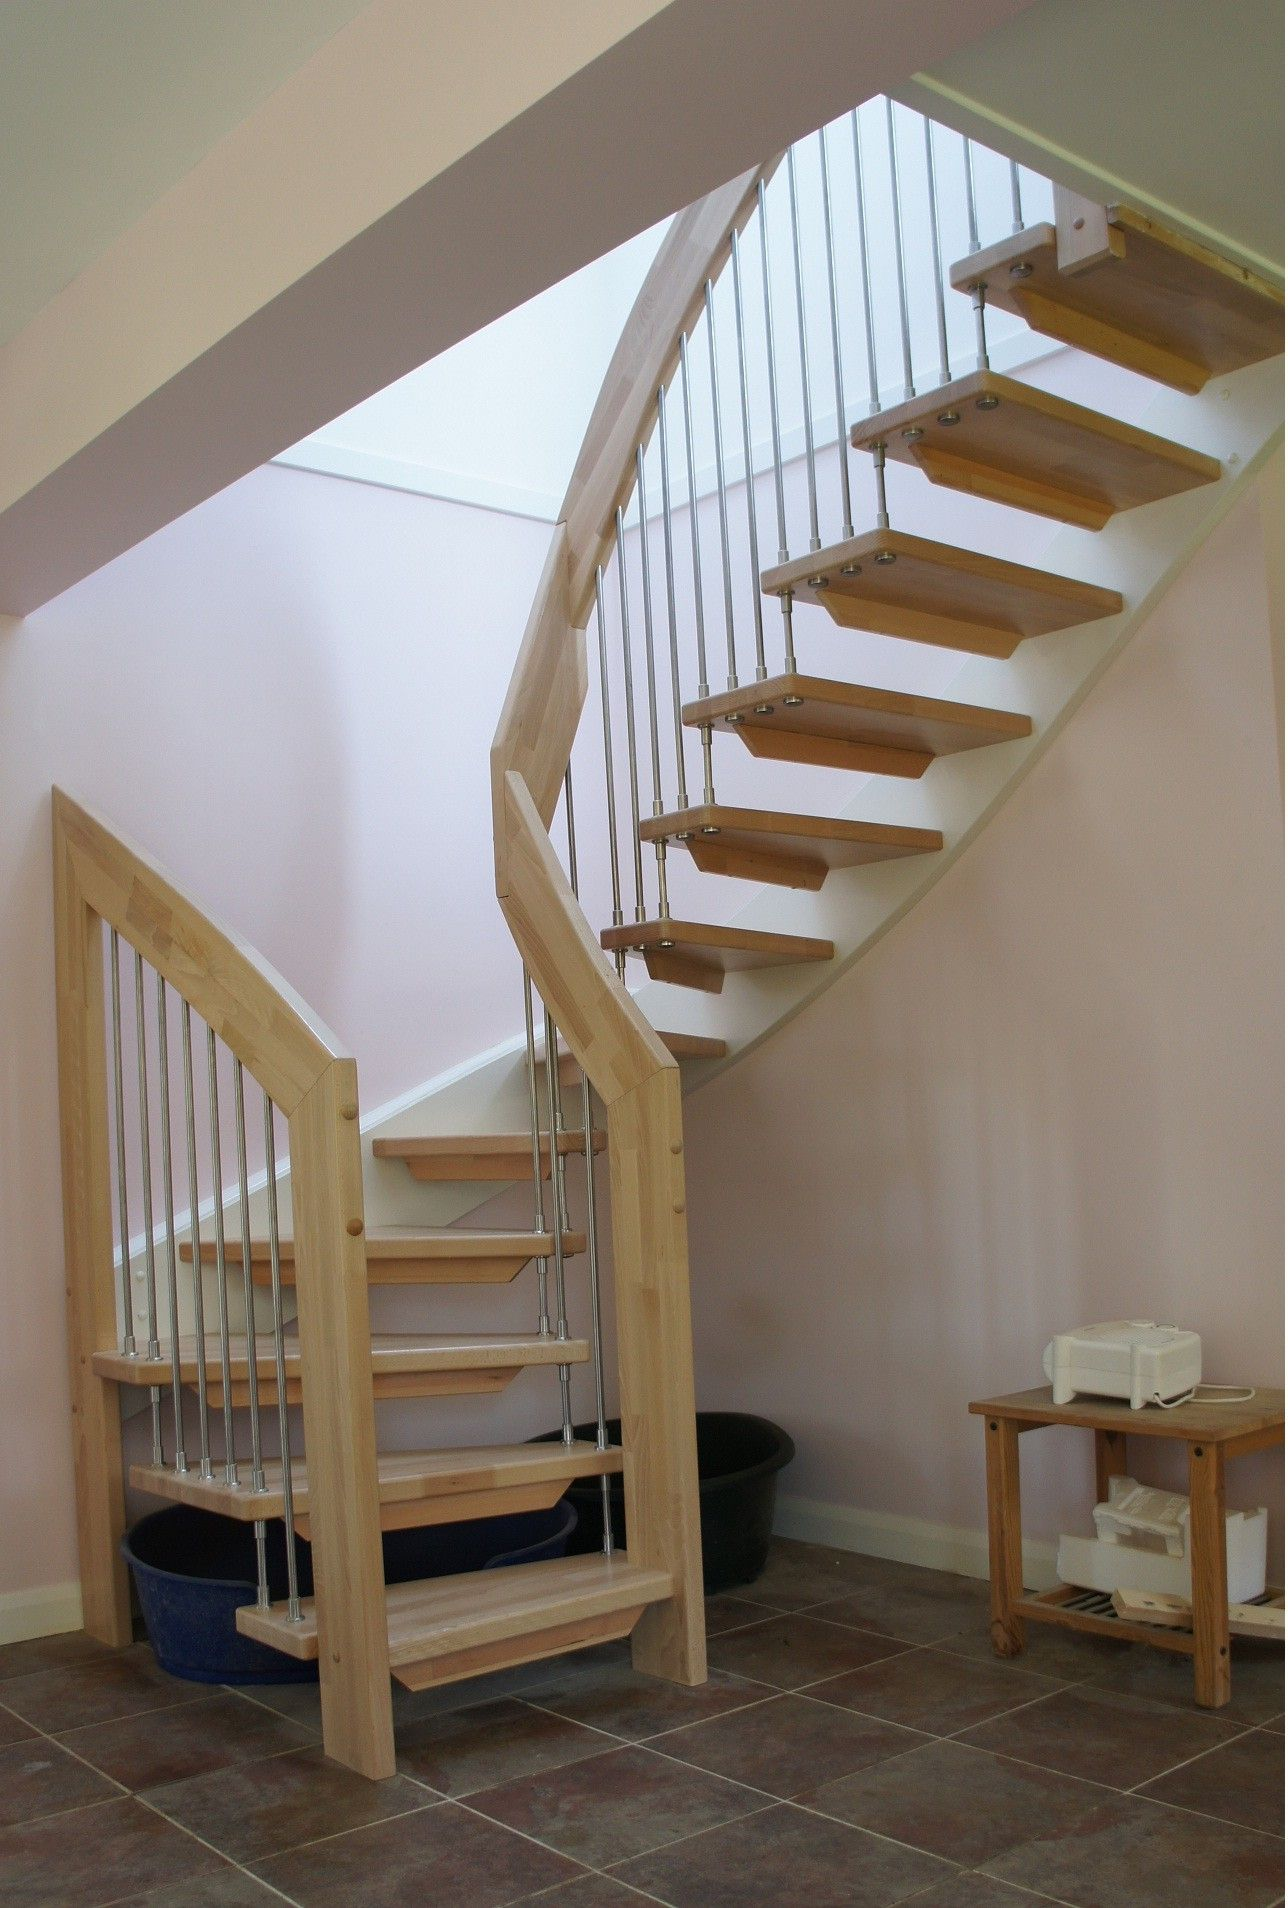 Simple Design Ideas Of Small Space Staircase With Brown